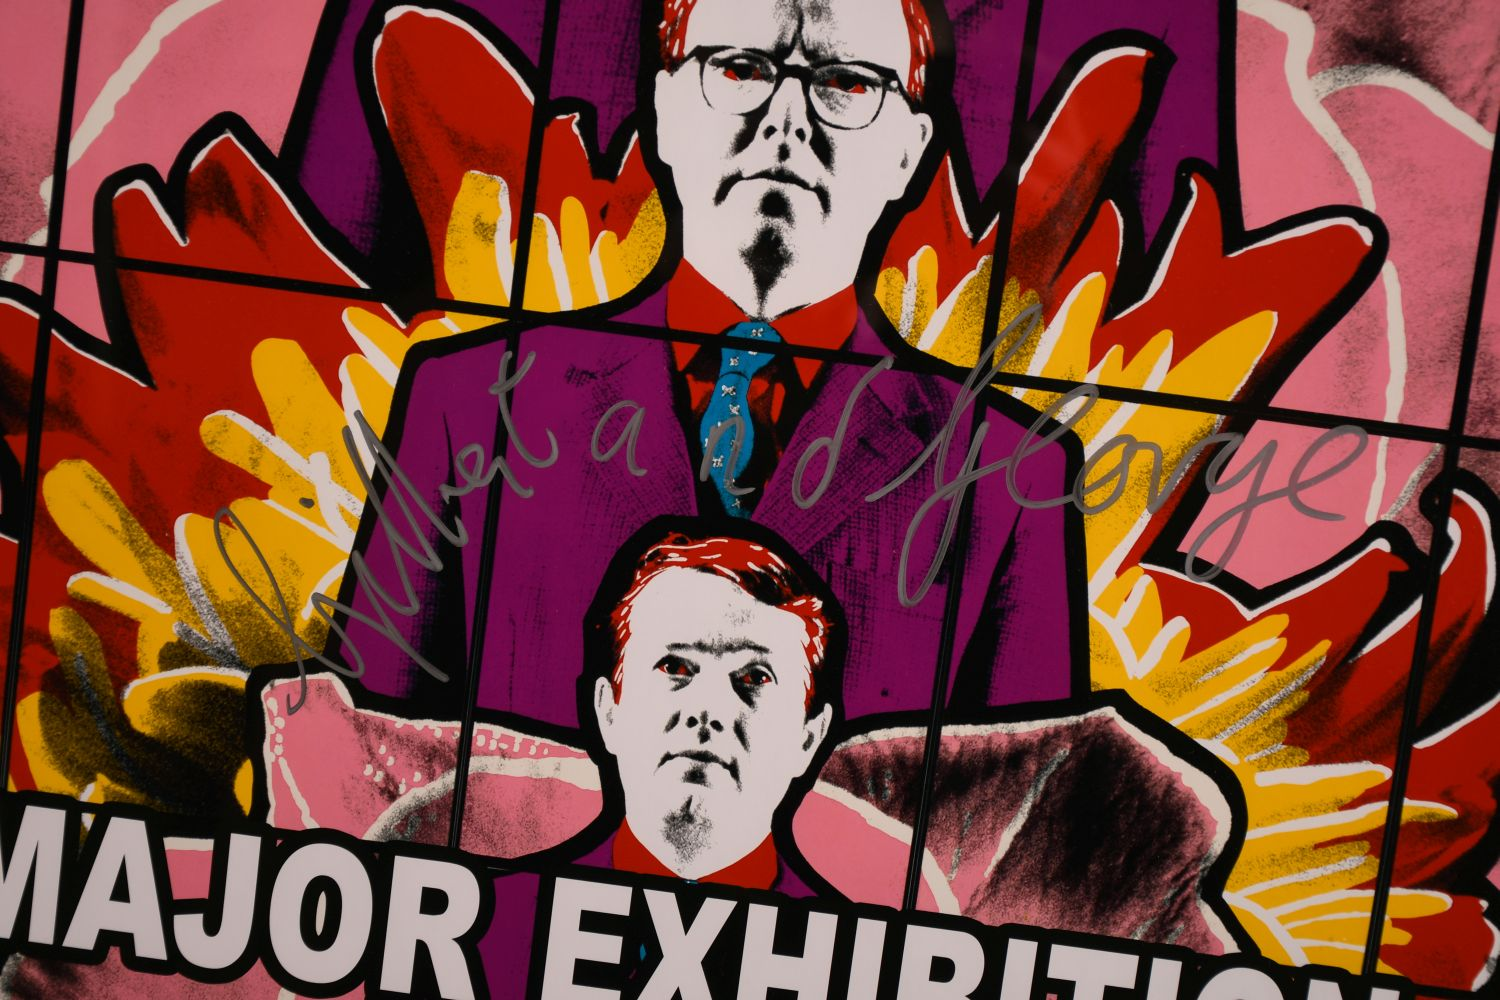 """Gilbert & George, A signed exhibition poster from the Tate Modern, 30"""" x 20"""". - Image 3 of 4"""